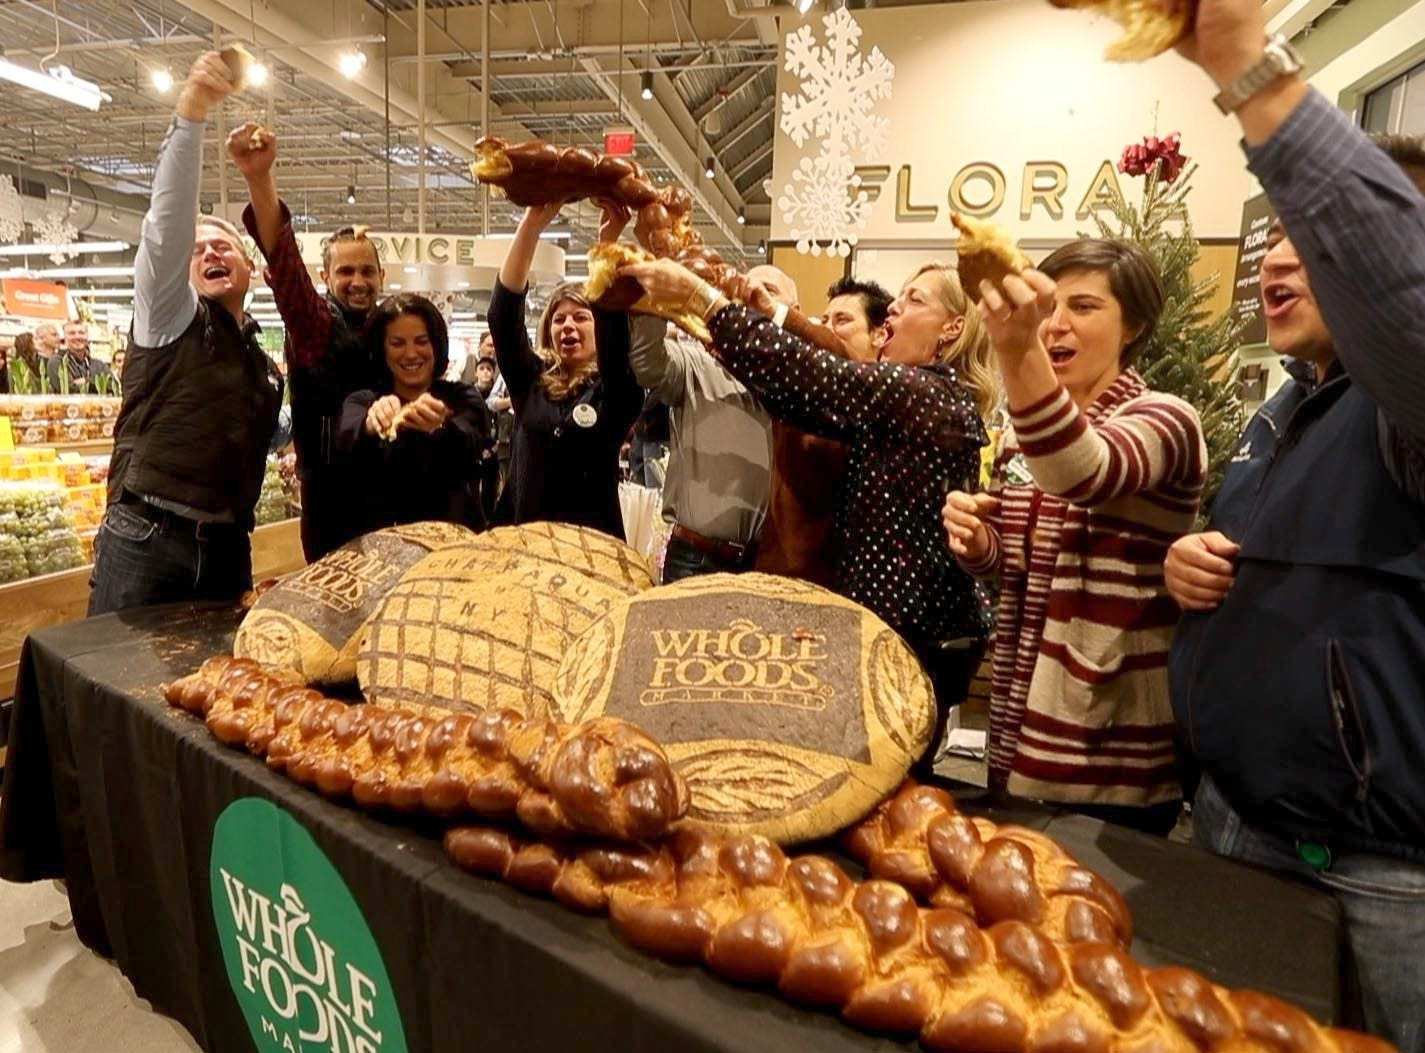 Whole Foods staff members broke a large challah to symbolize the grand opening of the supermarket at Chappaqua Crossing  Dec. 15, 2018. The 40,000 square foot store opened to shoppers on the site of the formers Readers Digest headquarters. The New Castle Town Board and Planning Board approved a temporary traffic plan for the Route 117-Roaring Brook Road intersection that allowed the store to open.